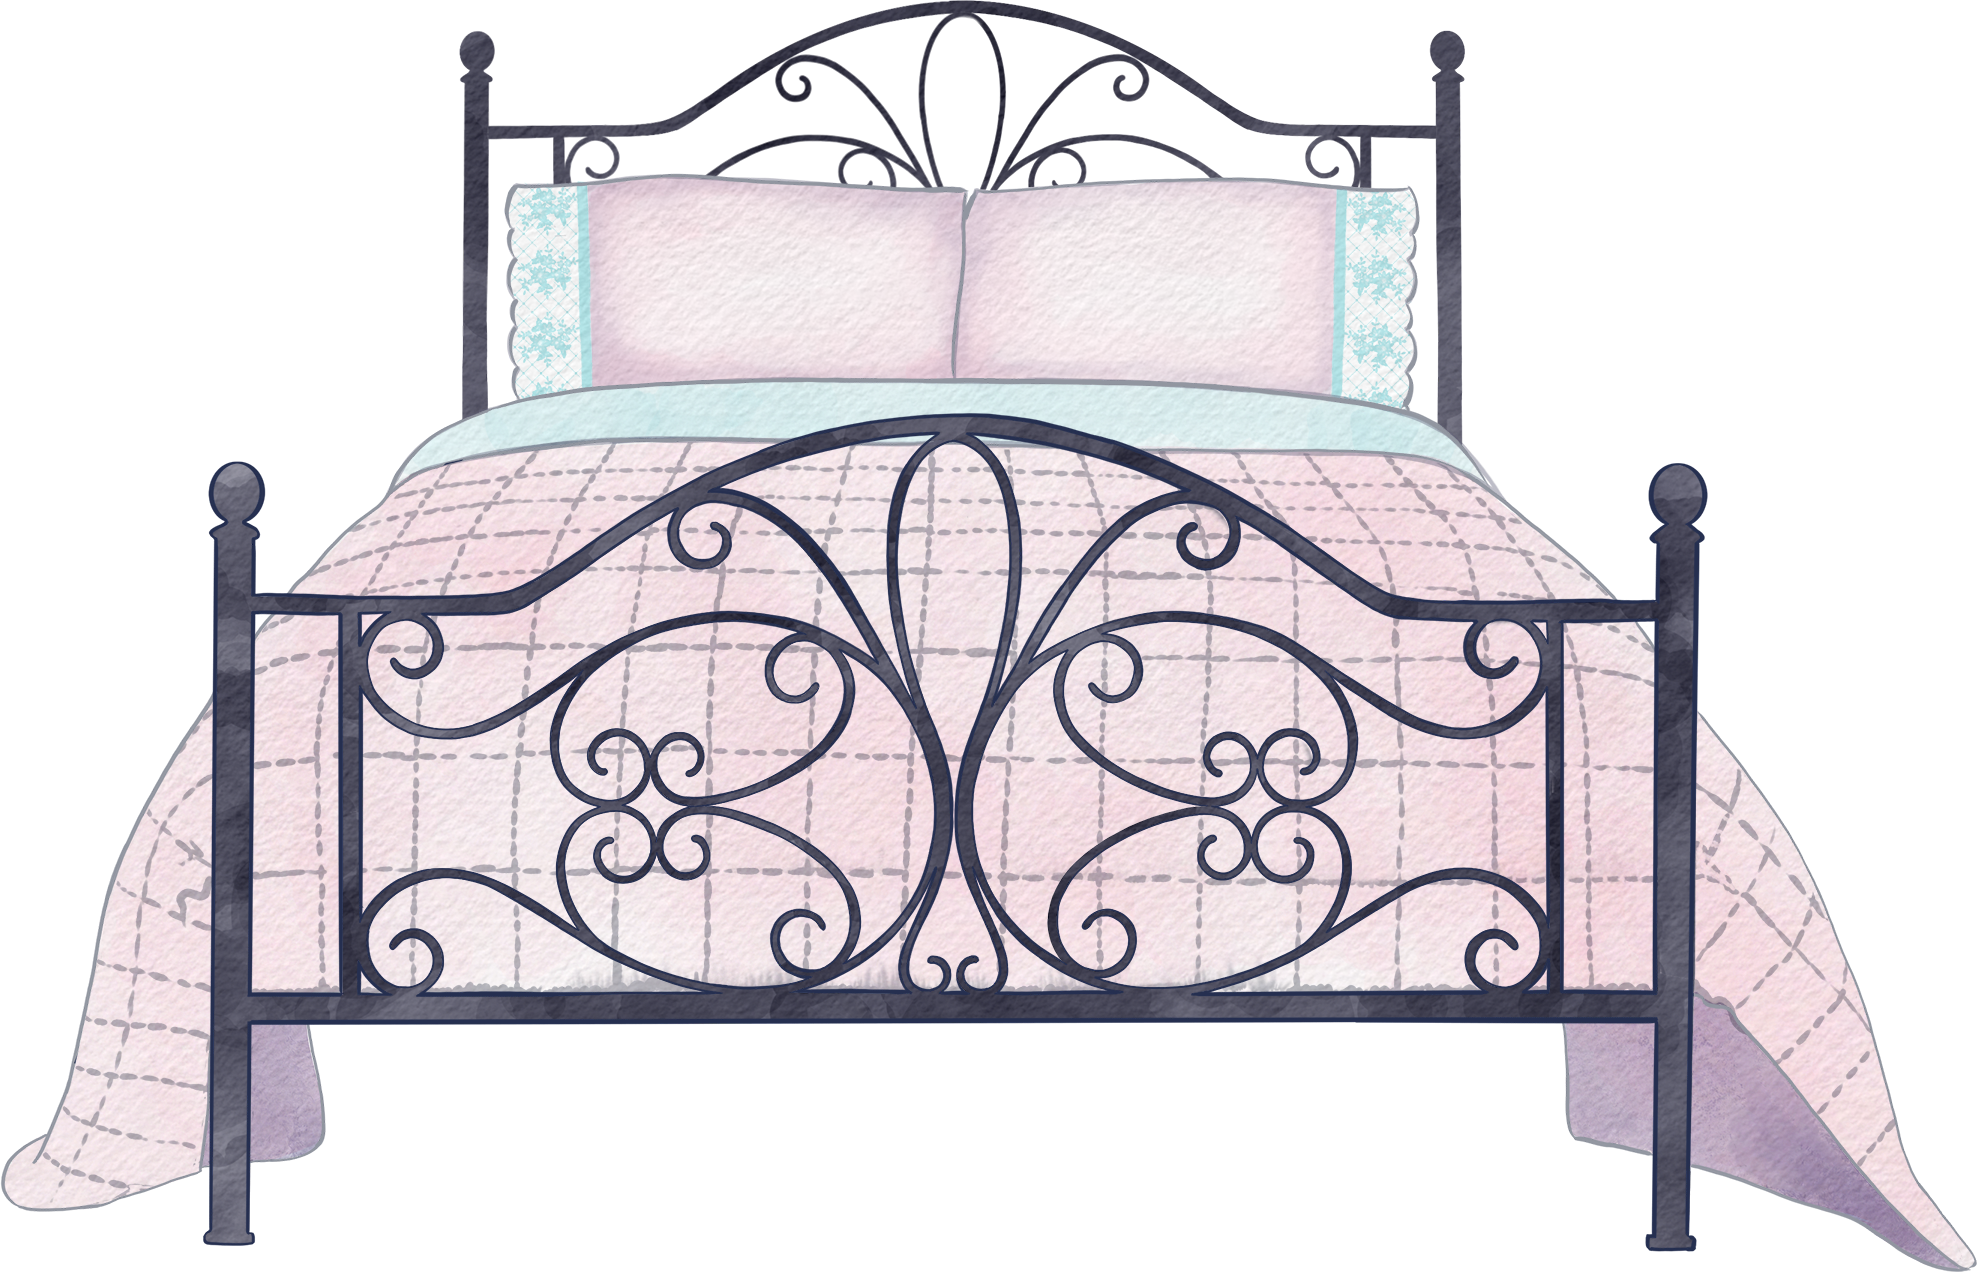 #bed #doublebed #kingsizebed #metalbed #quilt #pillow #bedroom #sleep #snooze #relax #freetoedit #remixit